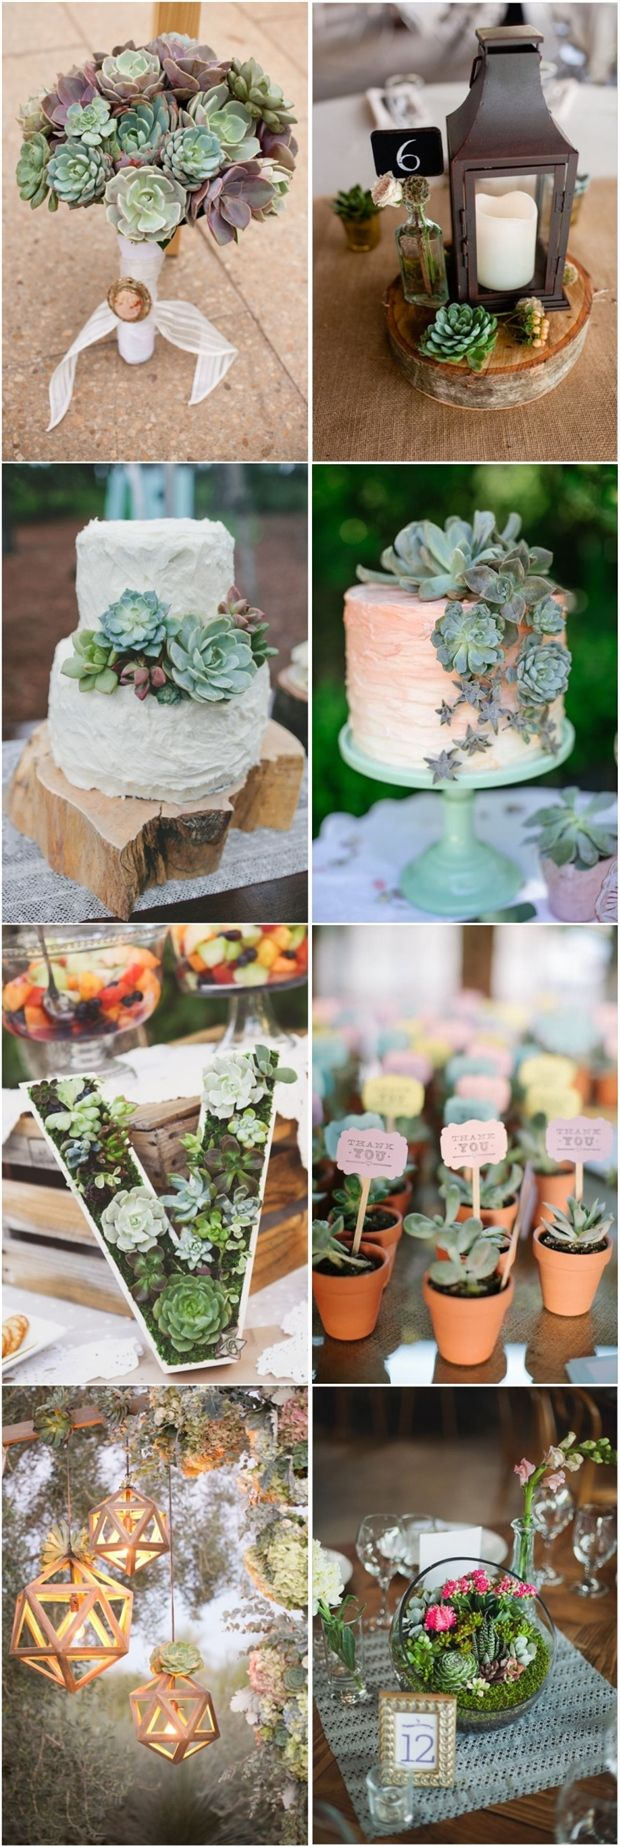 succulent rustic wedding ideas- green country wedding ideas - Deer Pearl Flowers